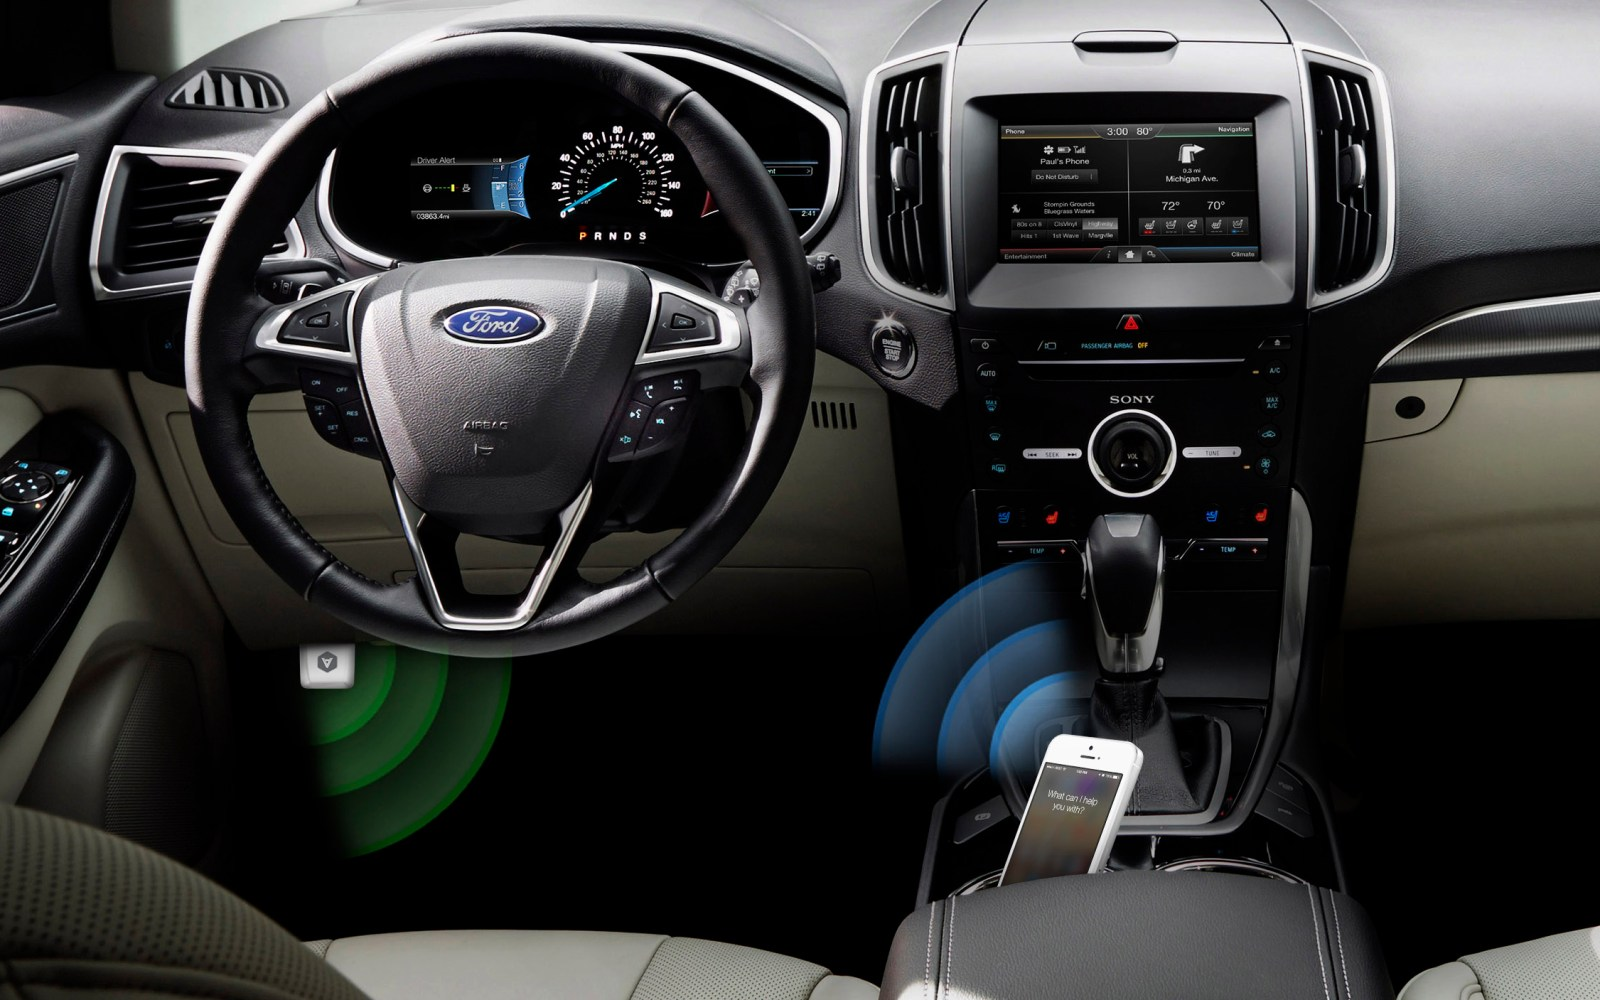 Smart driving assistant Automatic partnering with Ford Motors through its in-car Sync platform